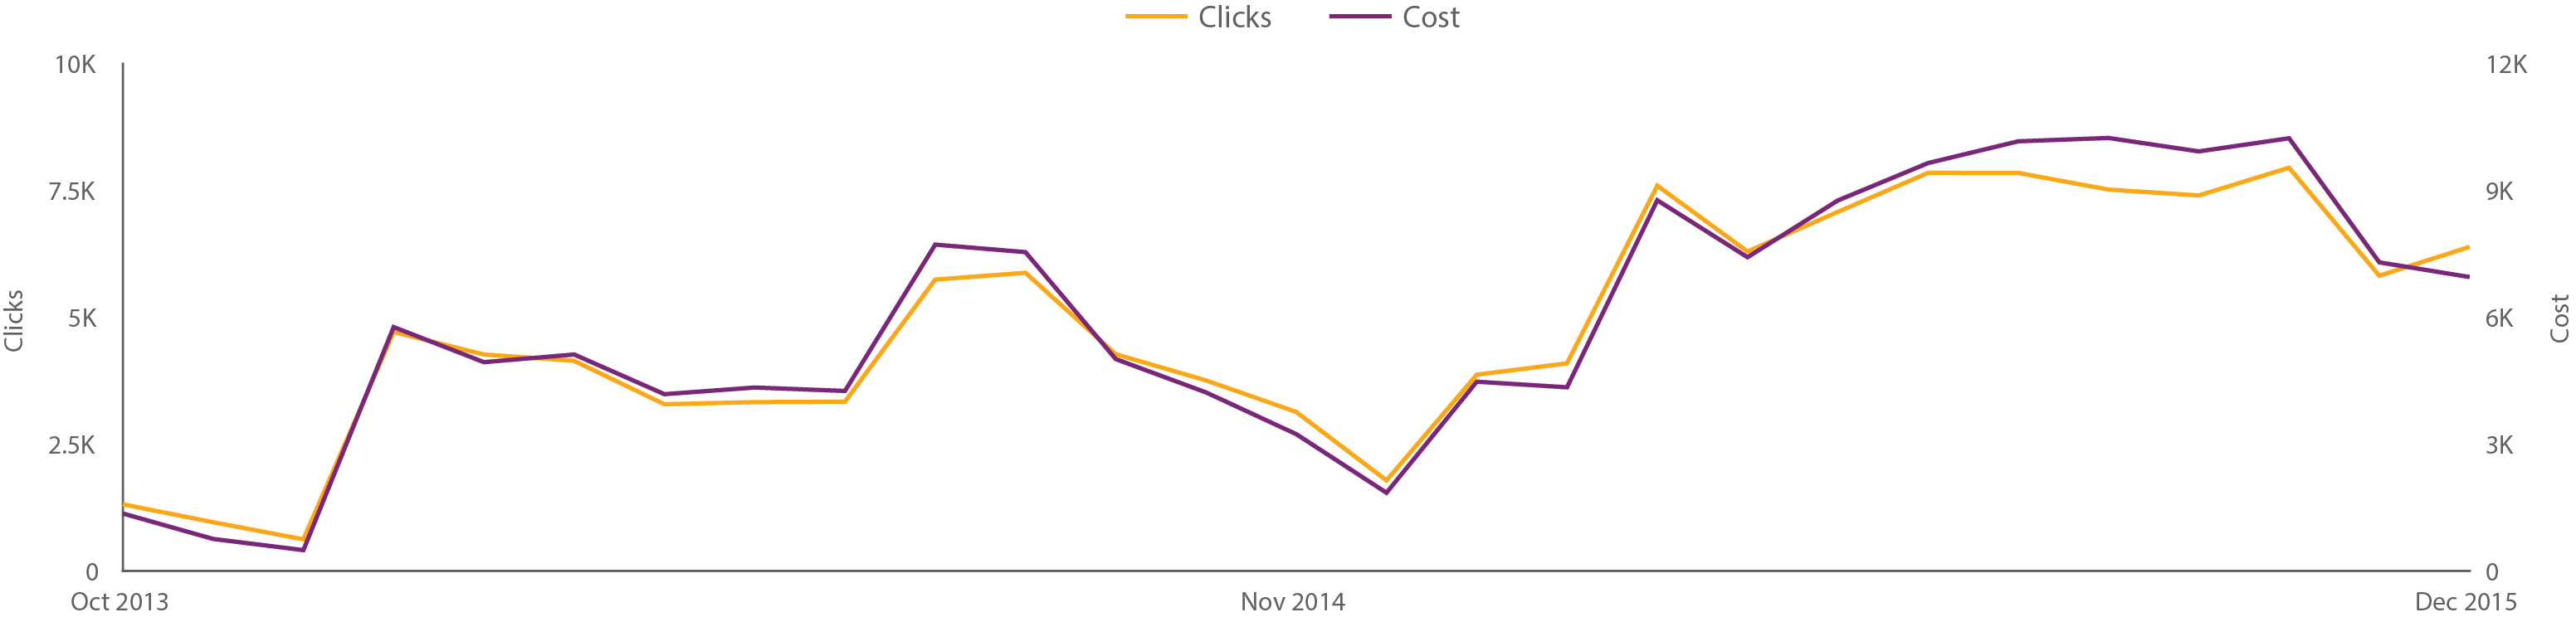 CPRE Clicks Vs Cost Monthly